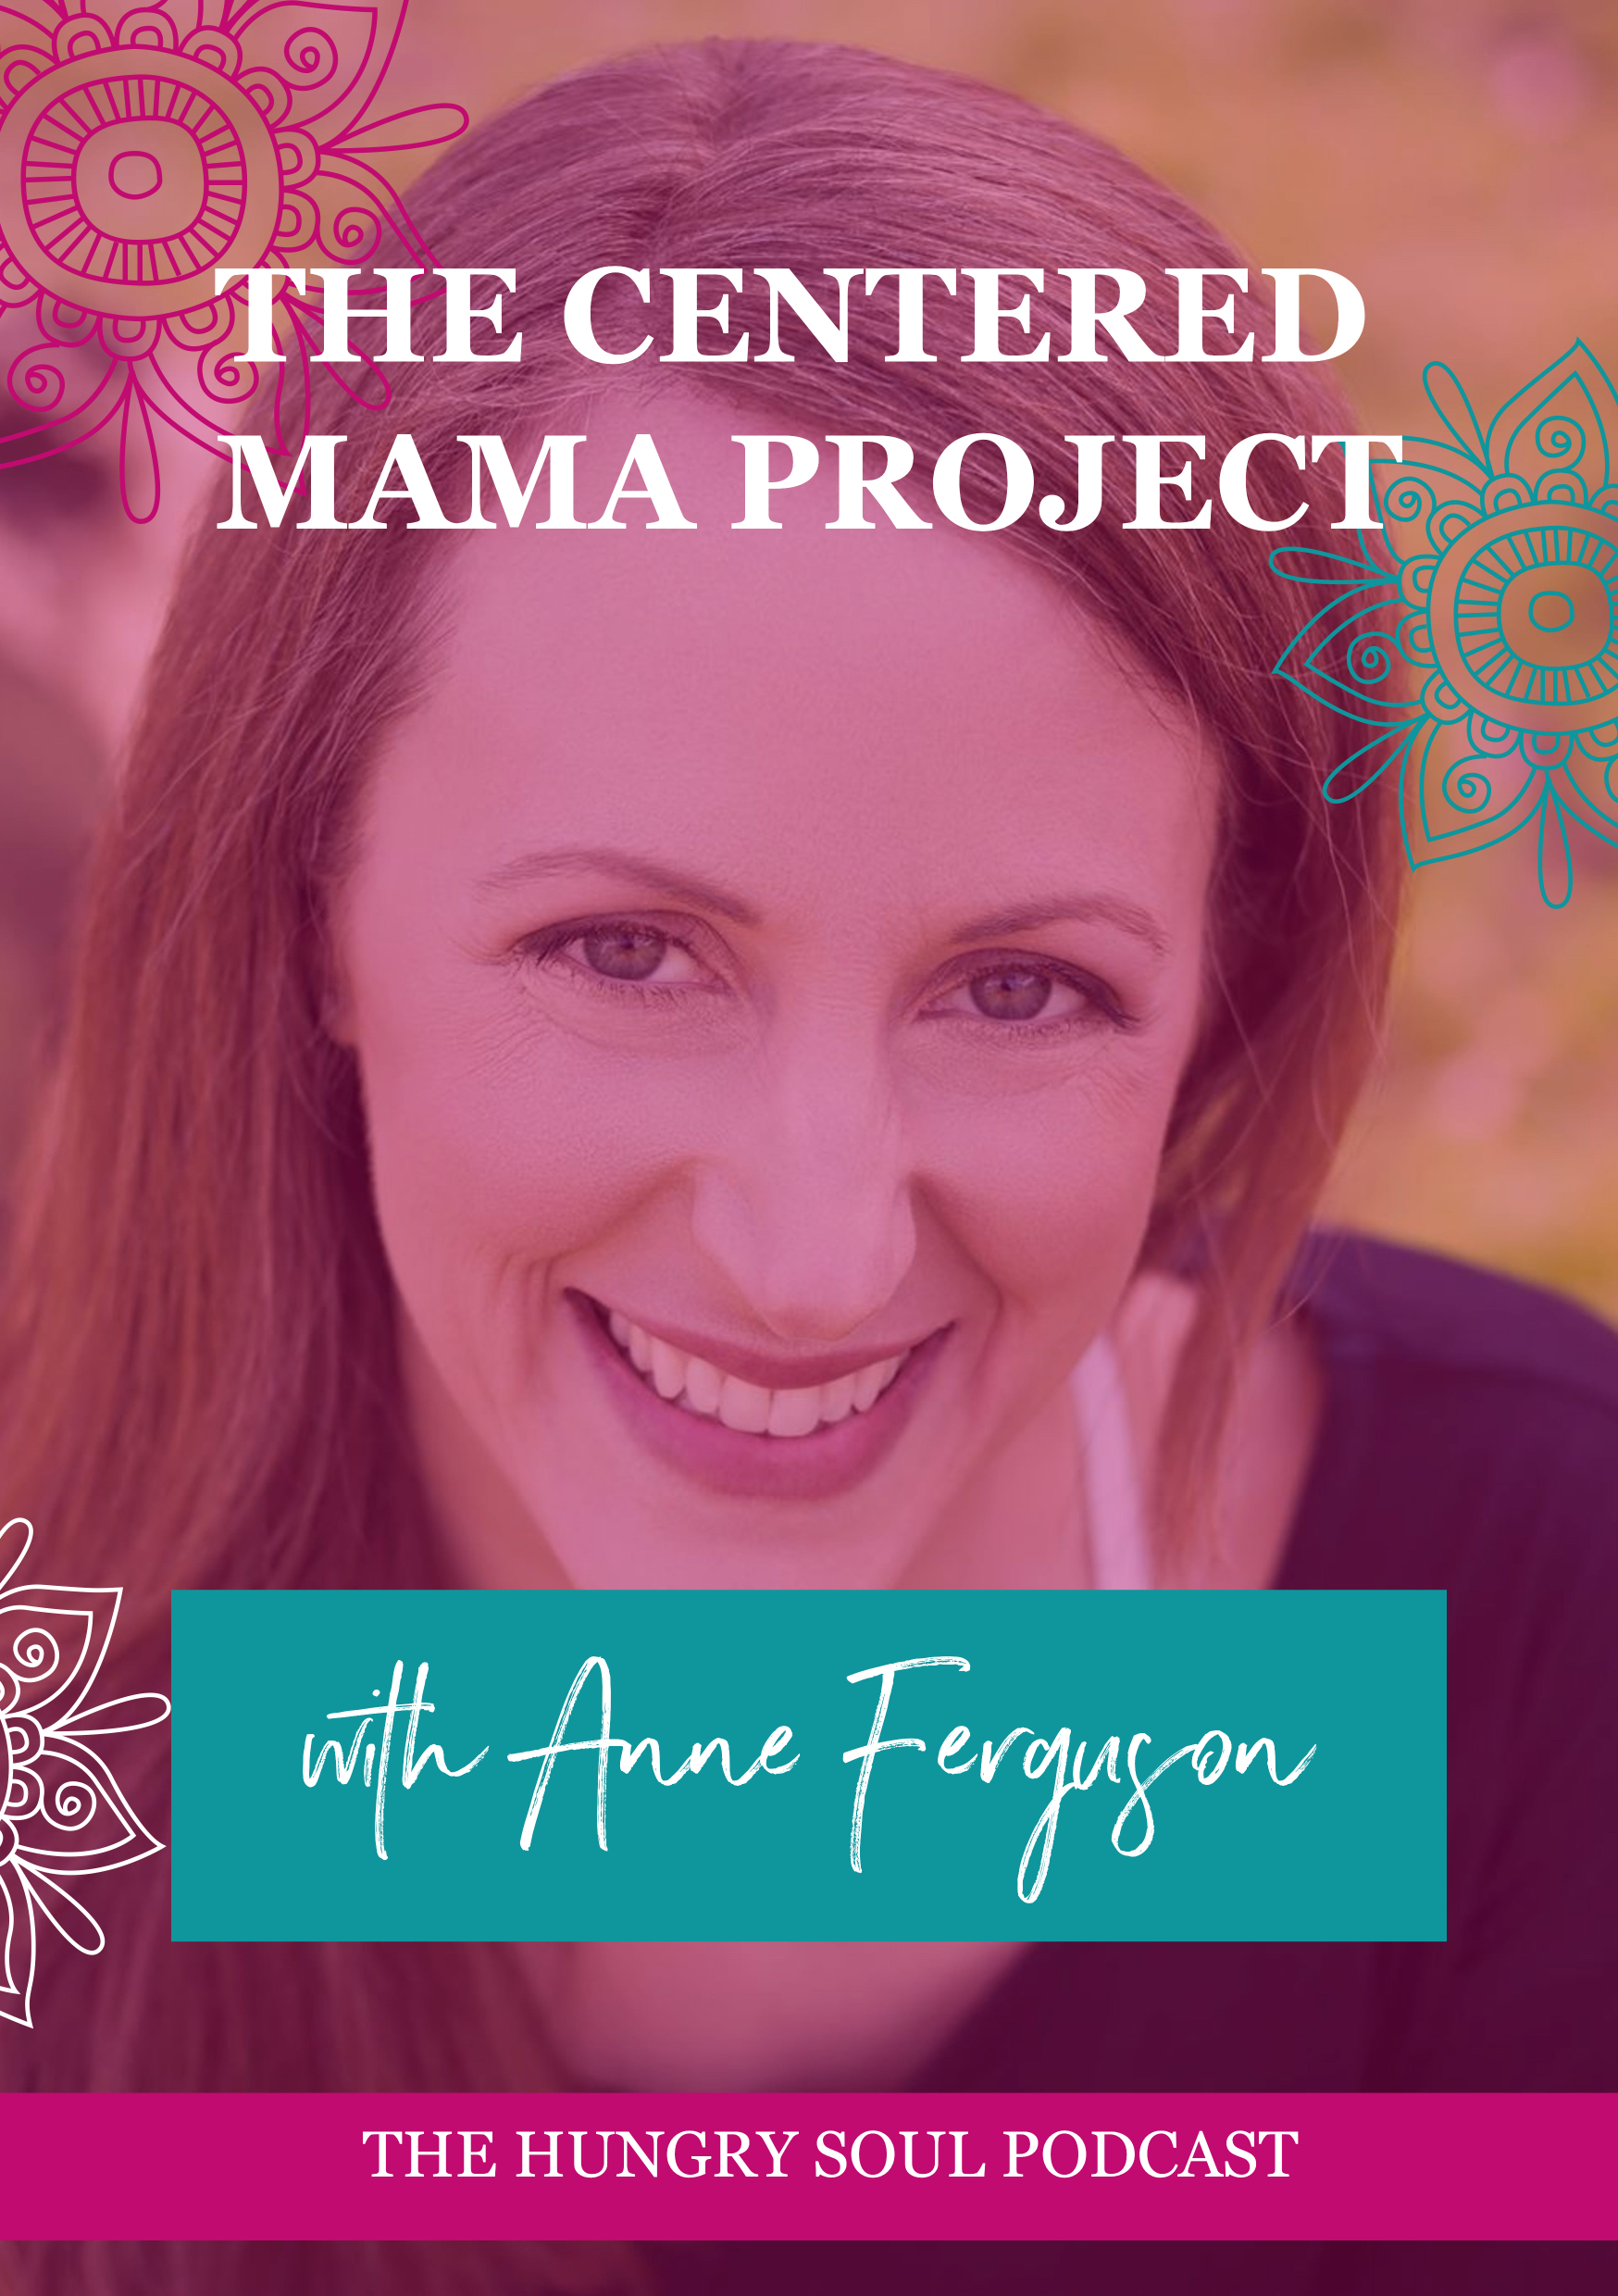 The Hungry Soul host Rachel Foy interviews Anne Ferguson, founder of The Centered Mama Project on why putting ourselves first as mums is so important